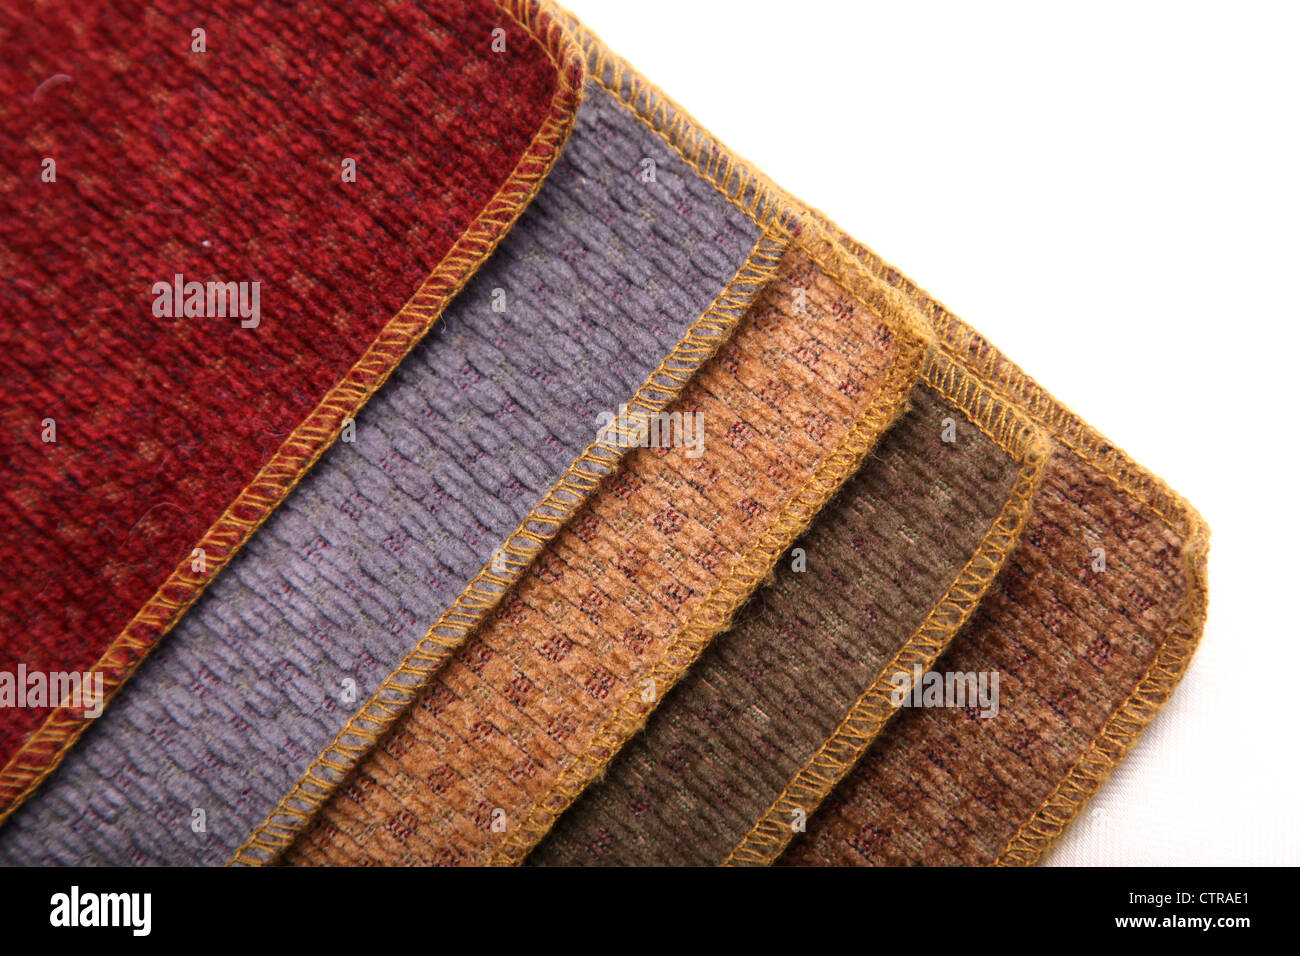 A book of upholstery carpet samples. - Stock Image